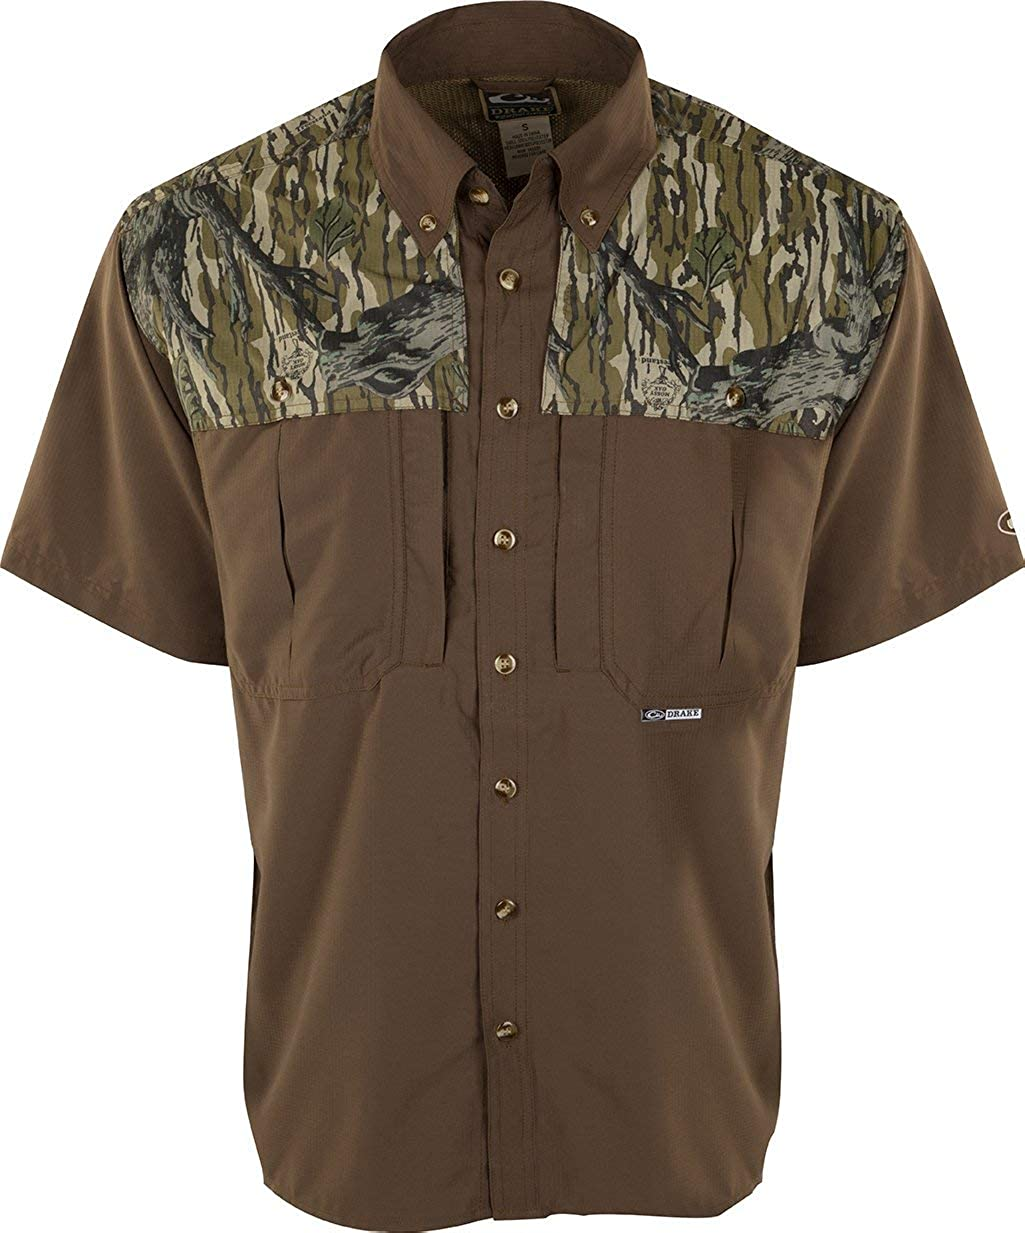 Drake Mens Two-Tone Camo Flyweight Wingshooters Shirt Short Sleeve Polyester